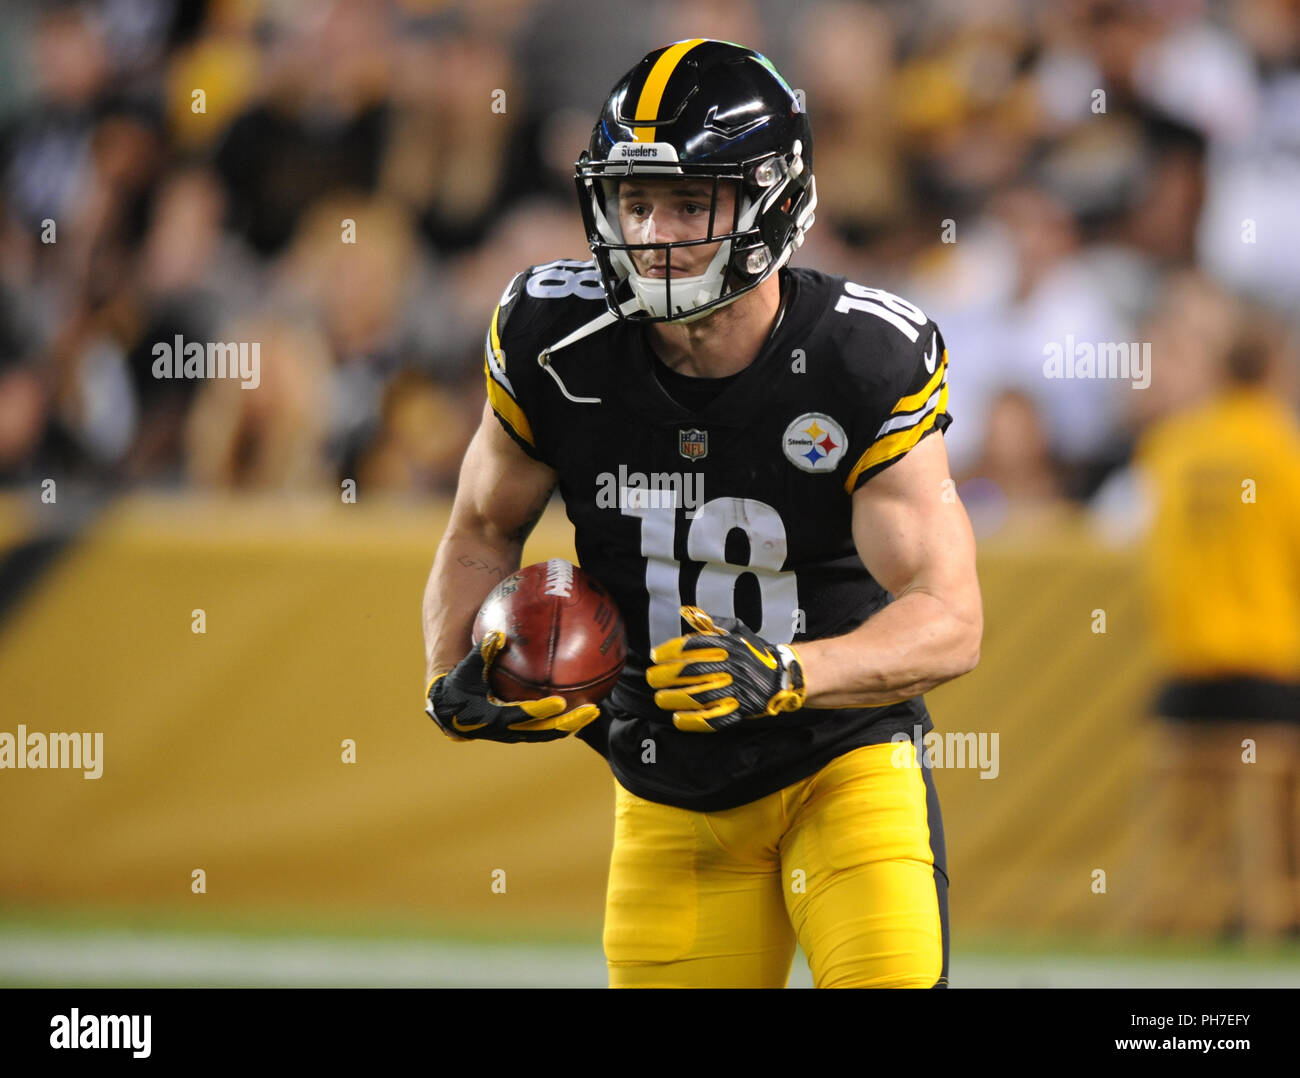 info for 95d1e e1ded Pittsburgh, USA. 30th Aug 2018. August 30th, 2018: Steelers ...